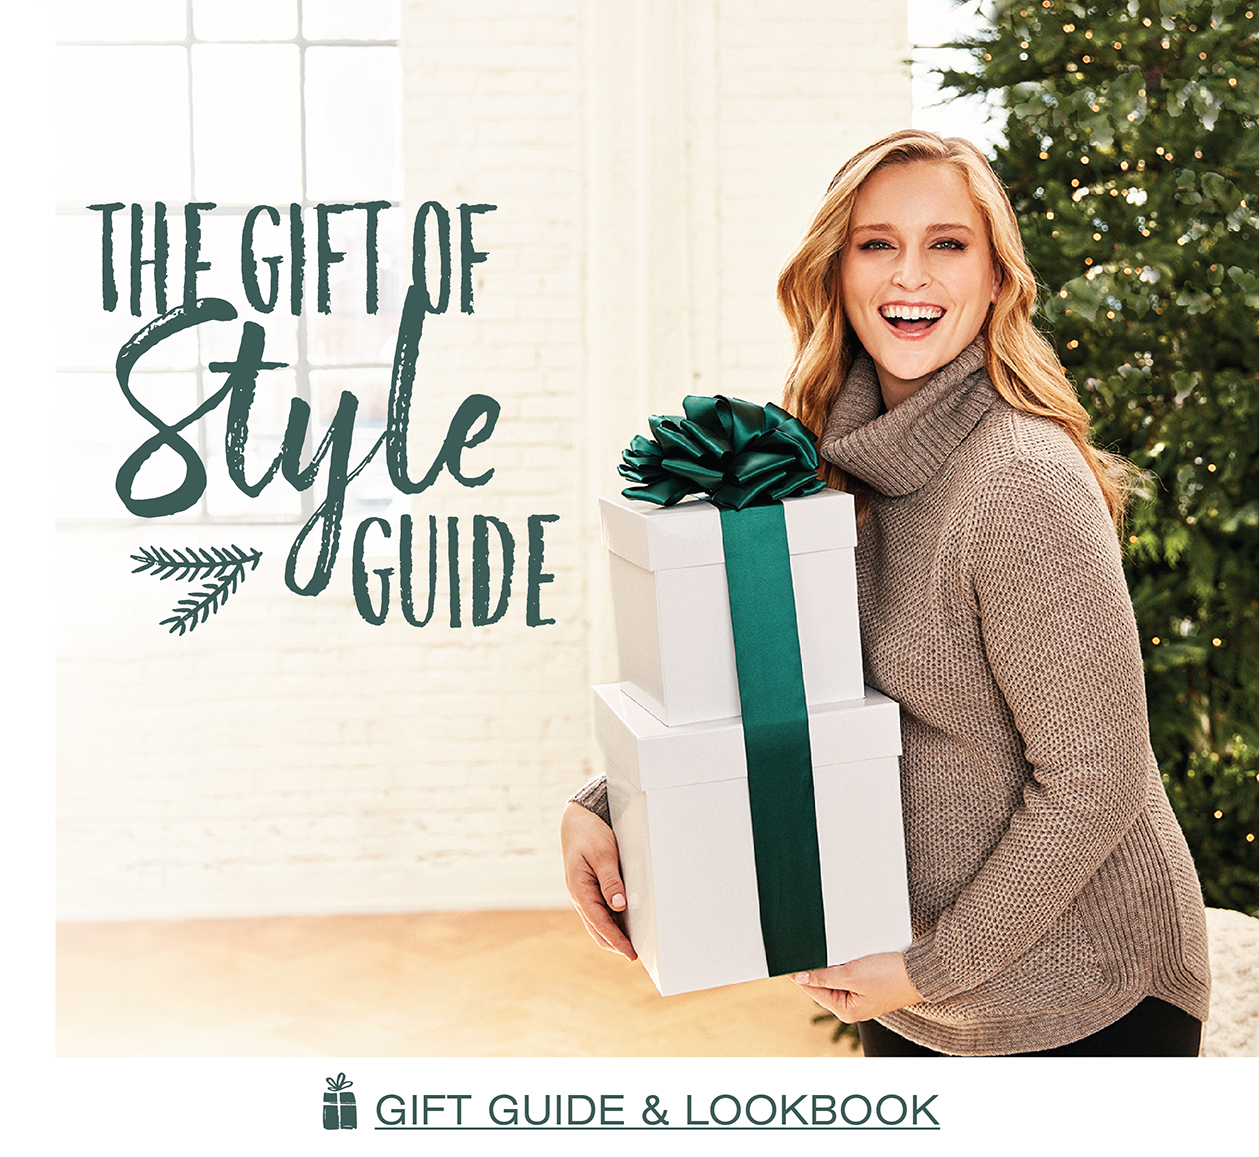 The gift of style guide. Gift Guide and Lookbook.